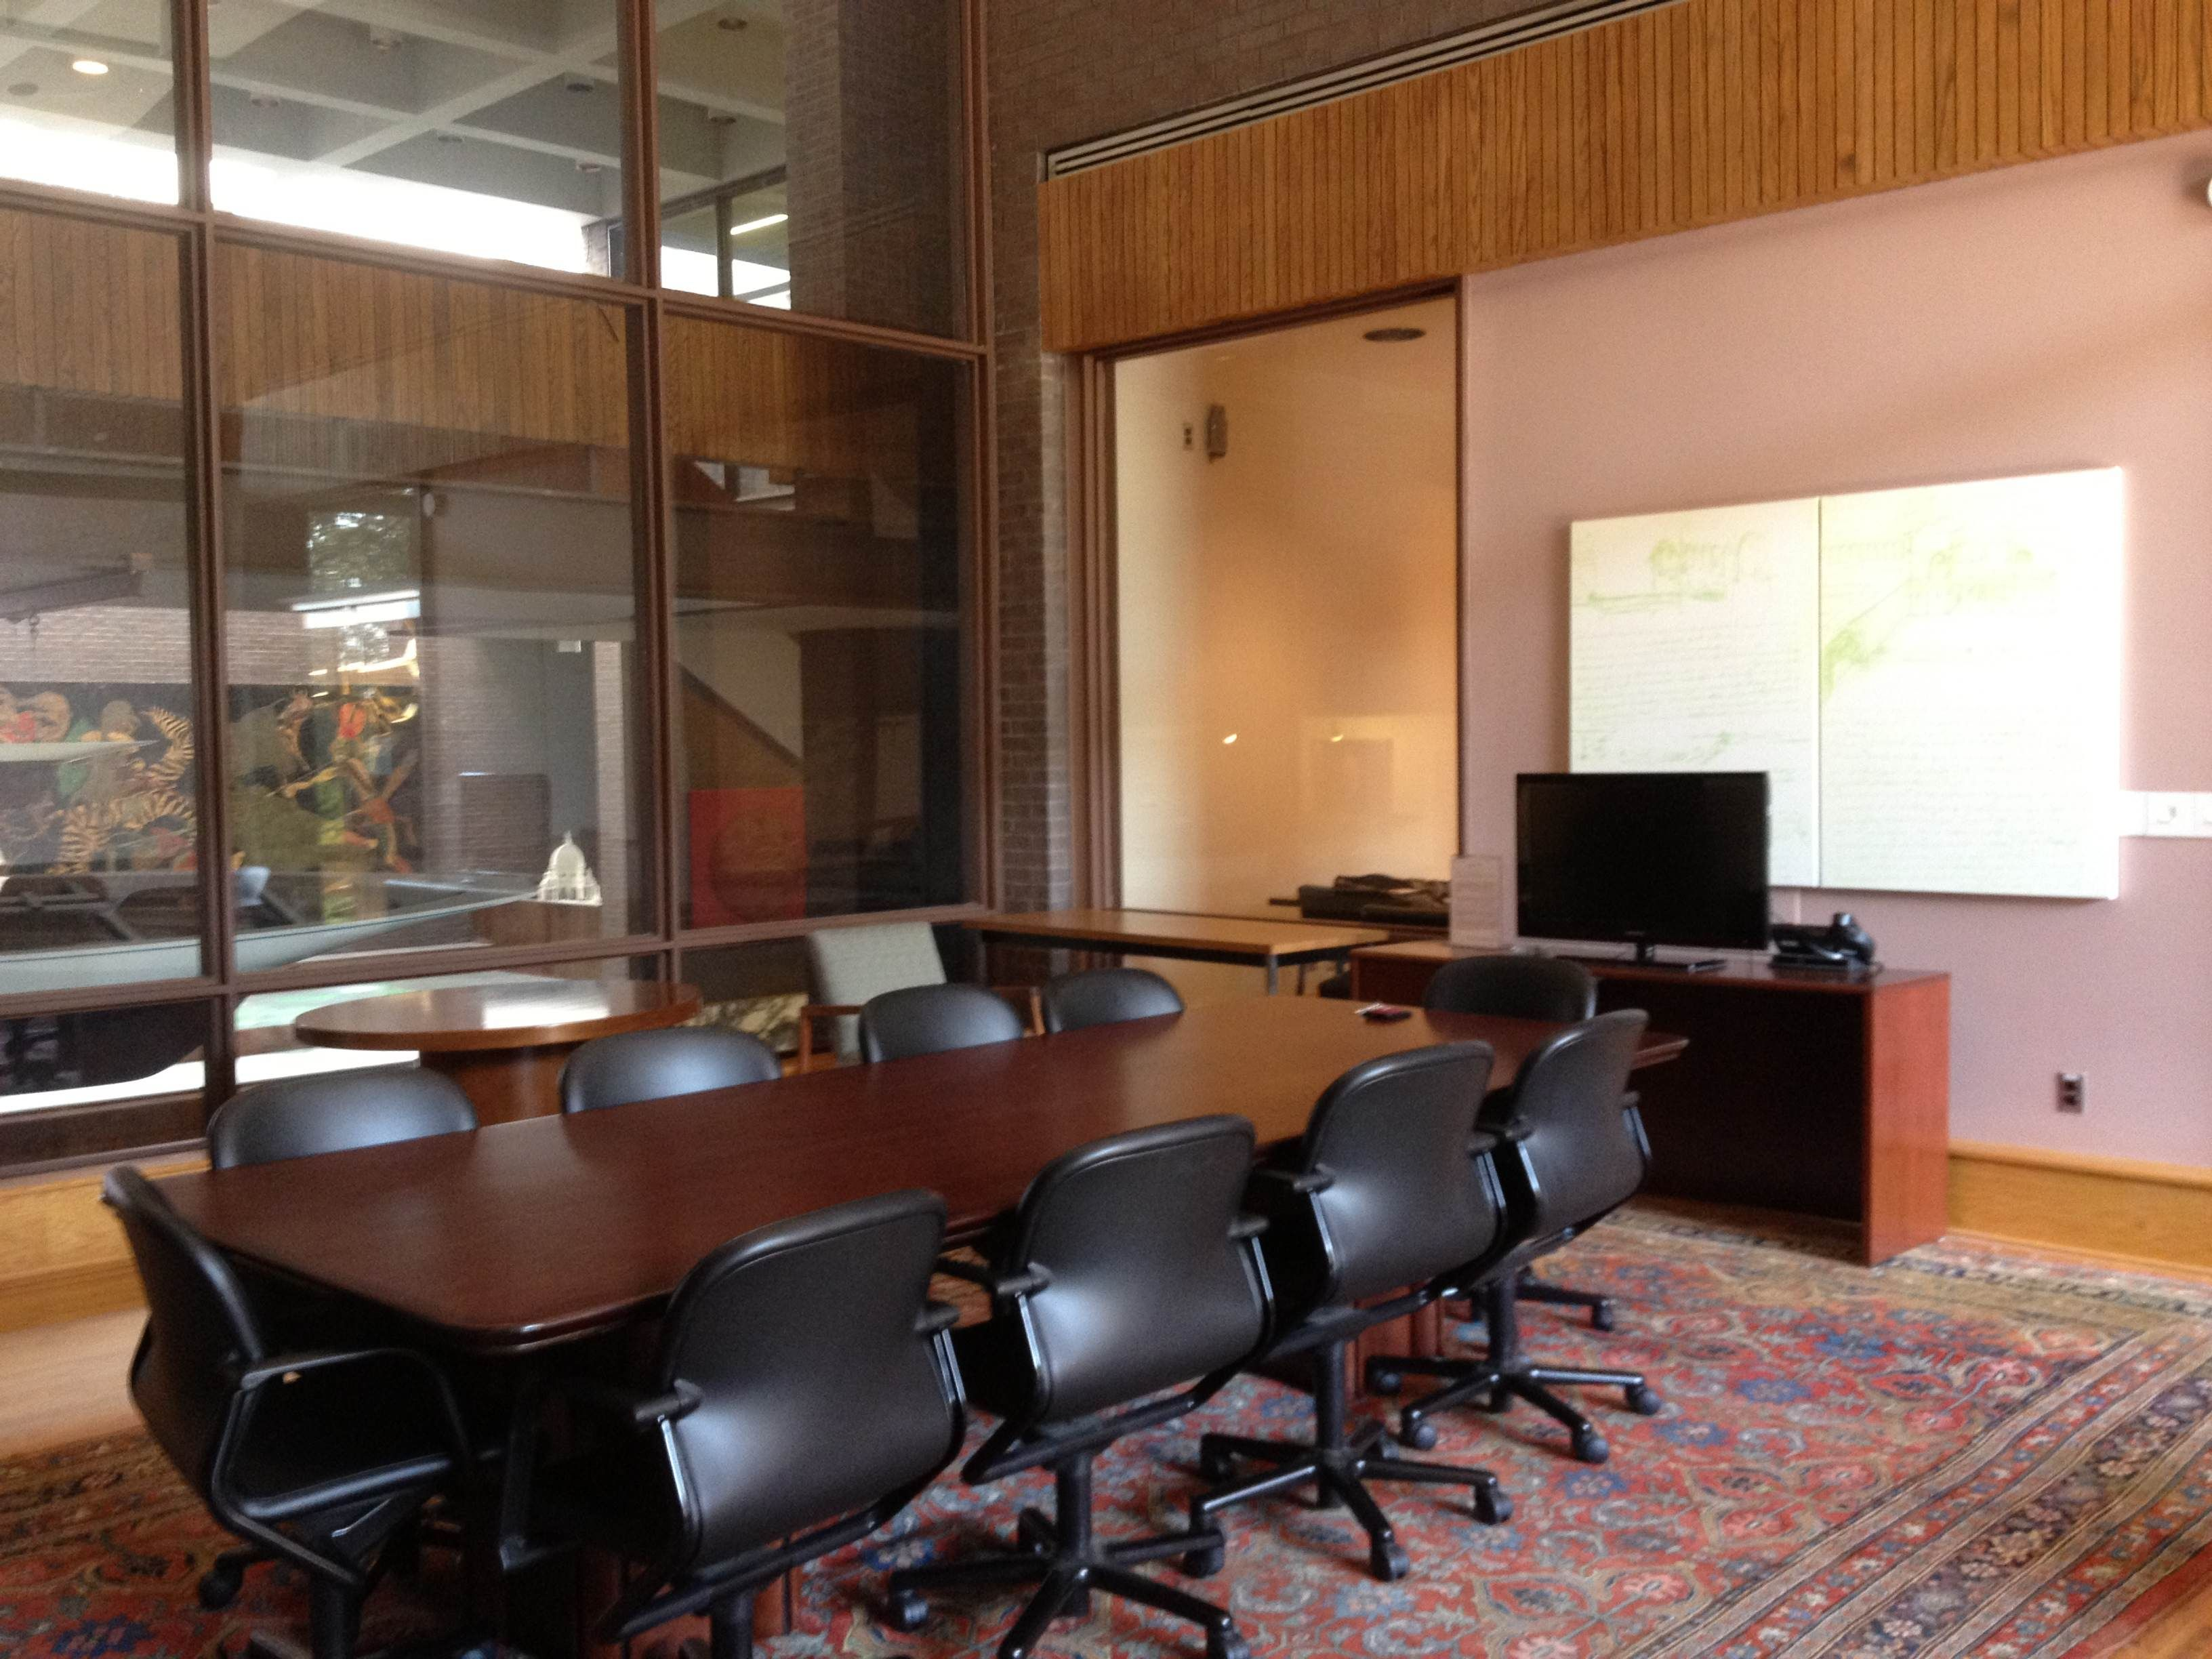 Meeting Room Stevens Institute Of Technology In New Jersey Library